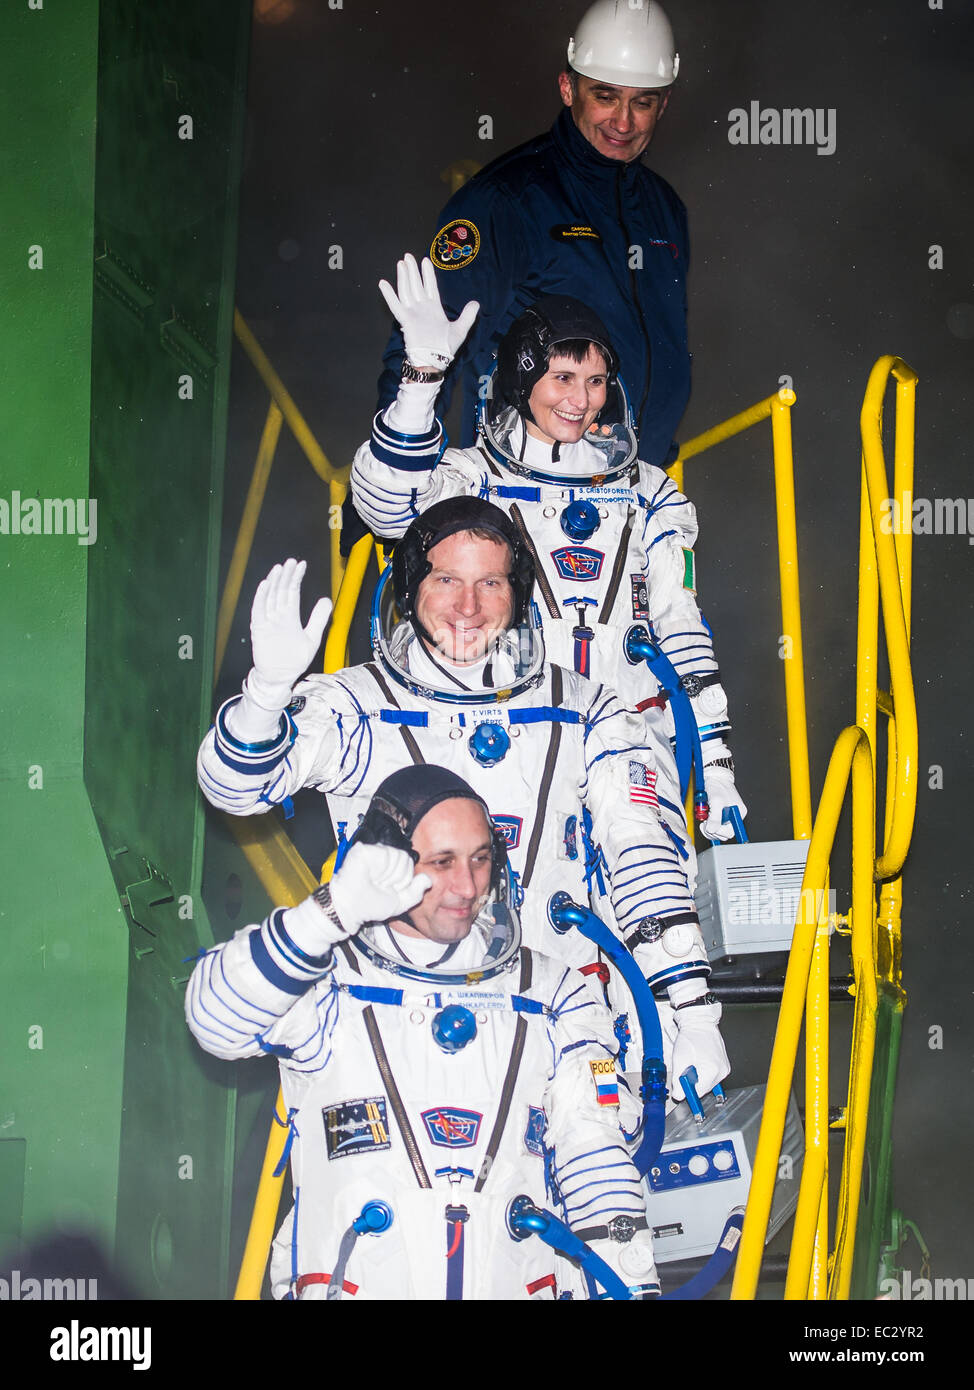 Expedition 42 Flight Engineer Samantha Cristoforetti, of the European Space Agency (ESA), top, Flight Engineer Terry - Stock Image